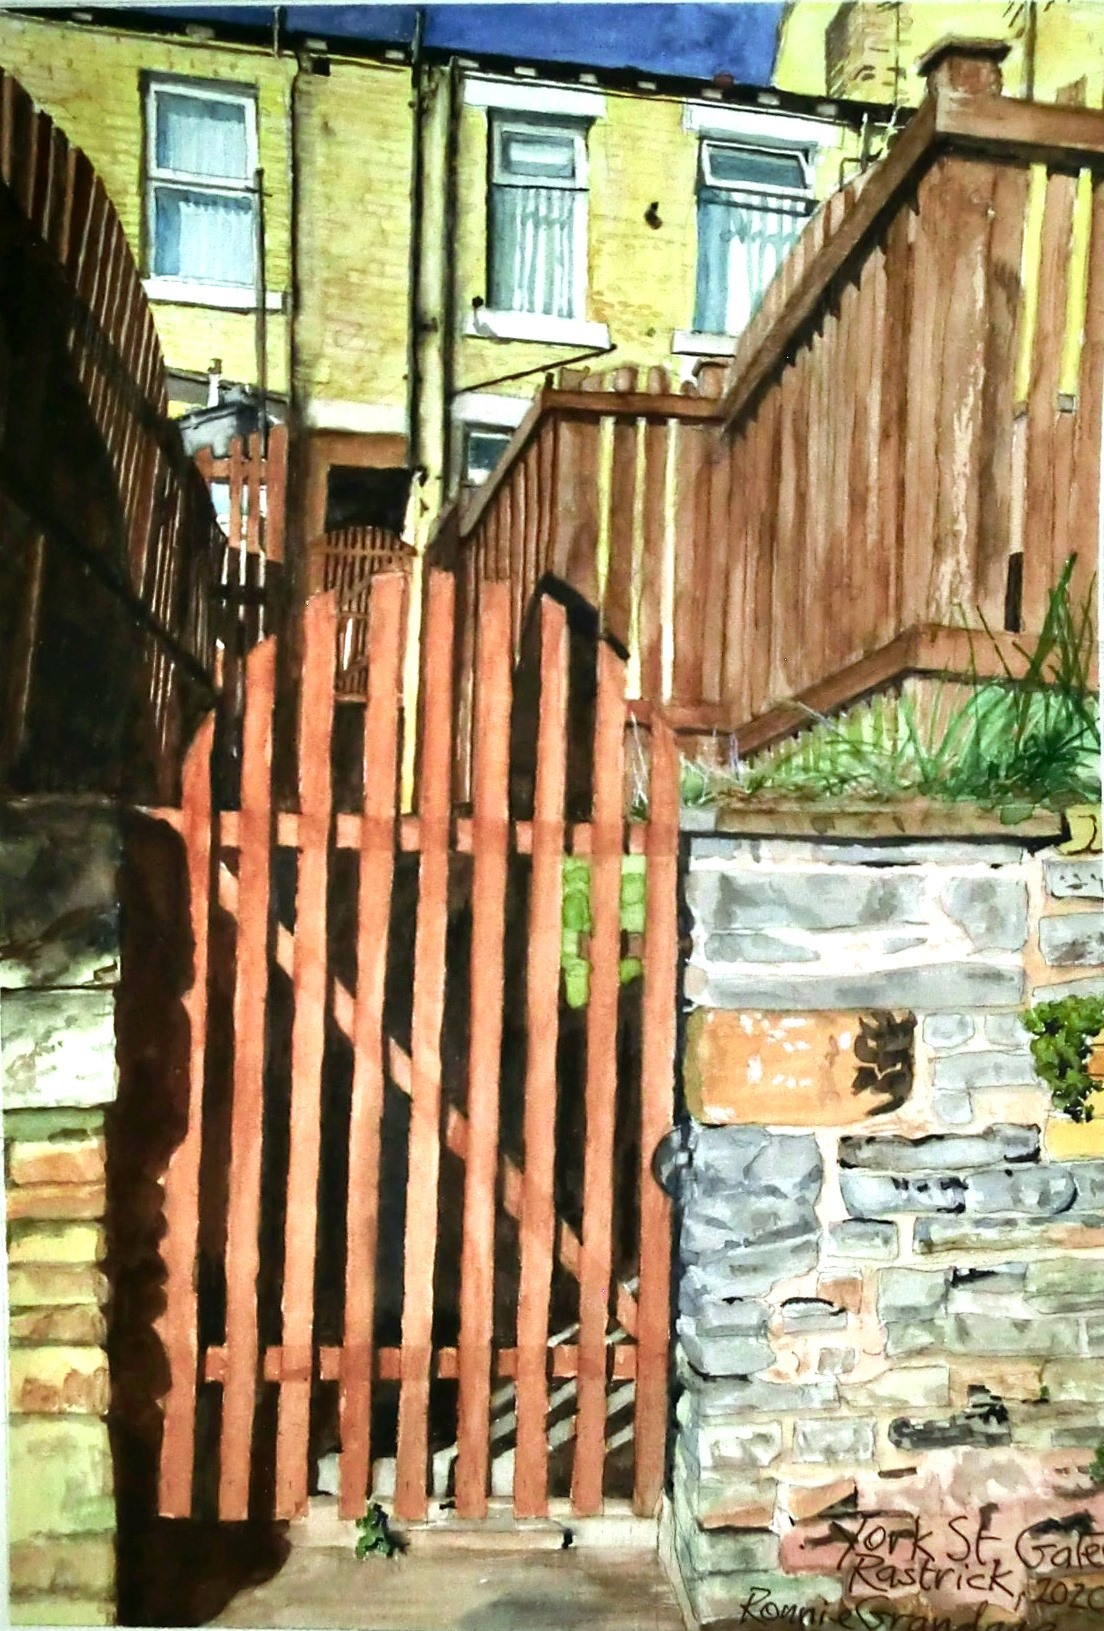 gallery/Members_Paintings/Ronnie_Grandage/2020%20Gates%2C%20York%20St%2C%20Rastrick.JPG